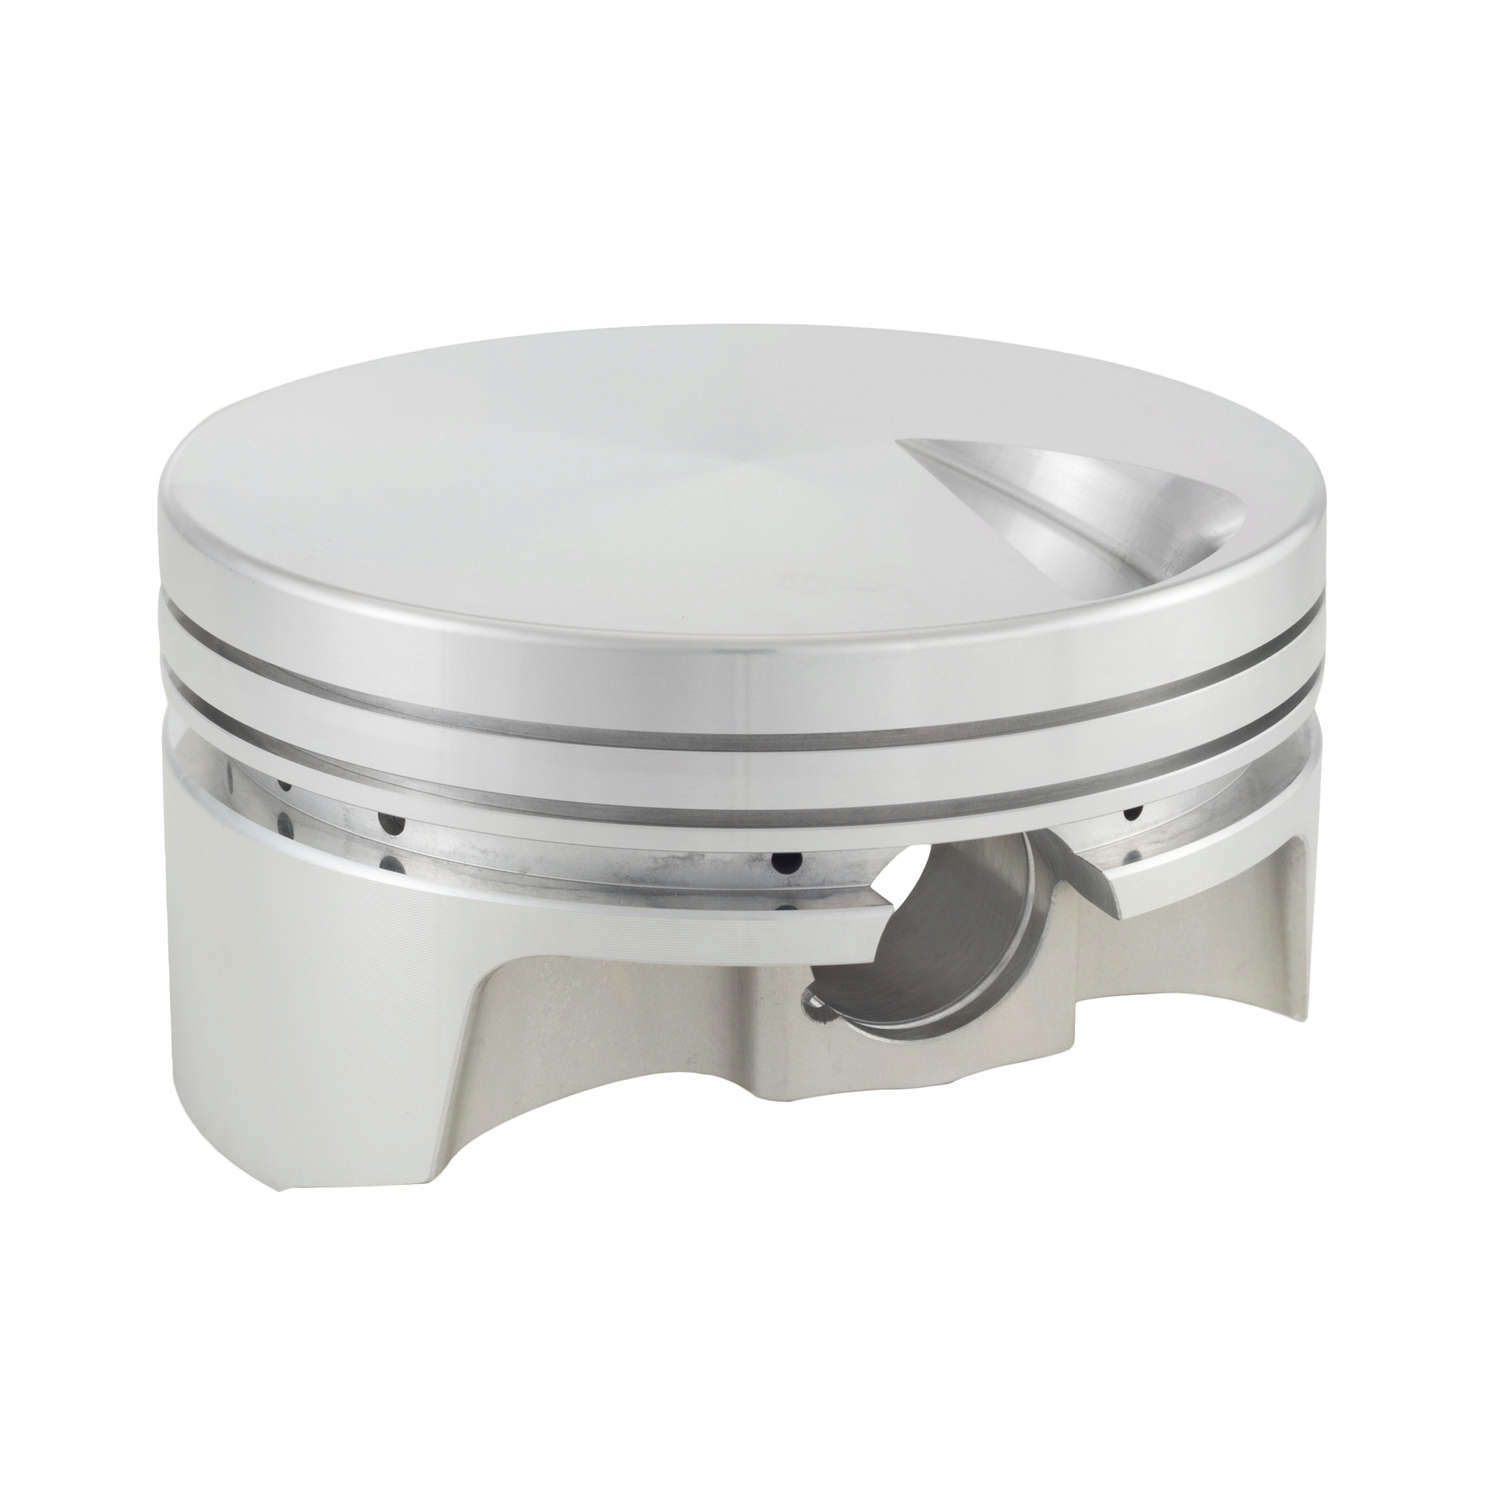 Bullet Pistons BBC5210-060-8 Piston and Ring, Forged, 4.560 in Bore, 1/16 x 1/16 x 3/16 in Ring Grooves, Minus 3.4 cc, Big Block Chevy, Kit